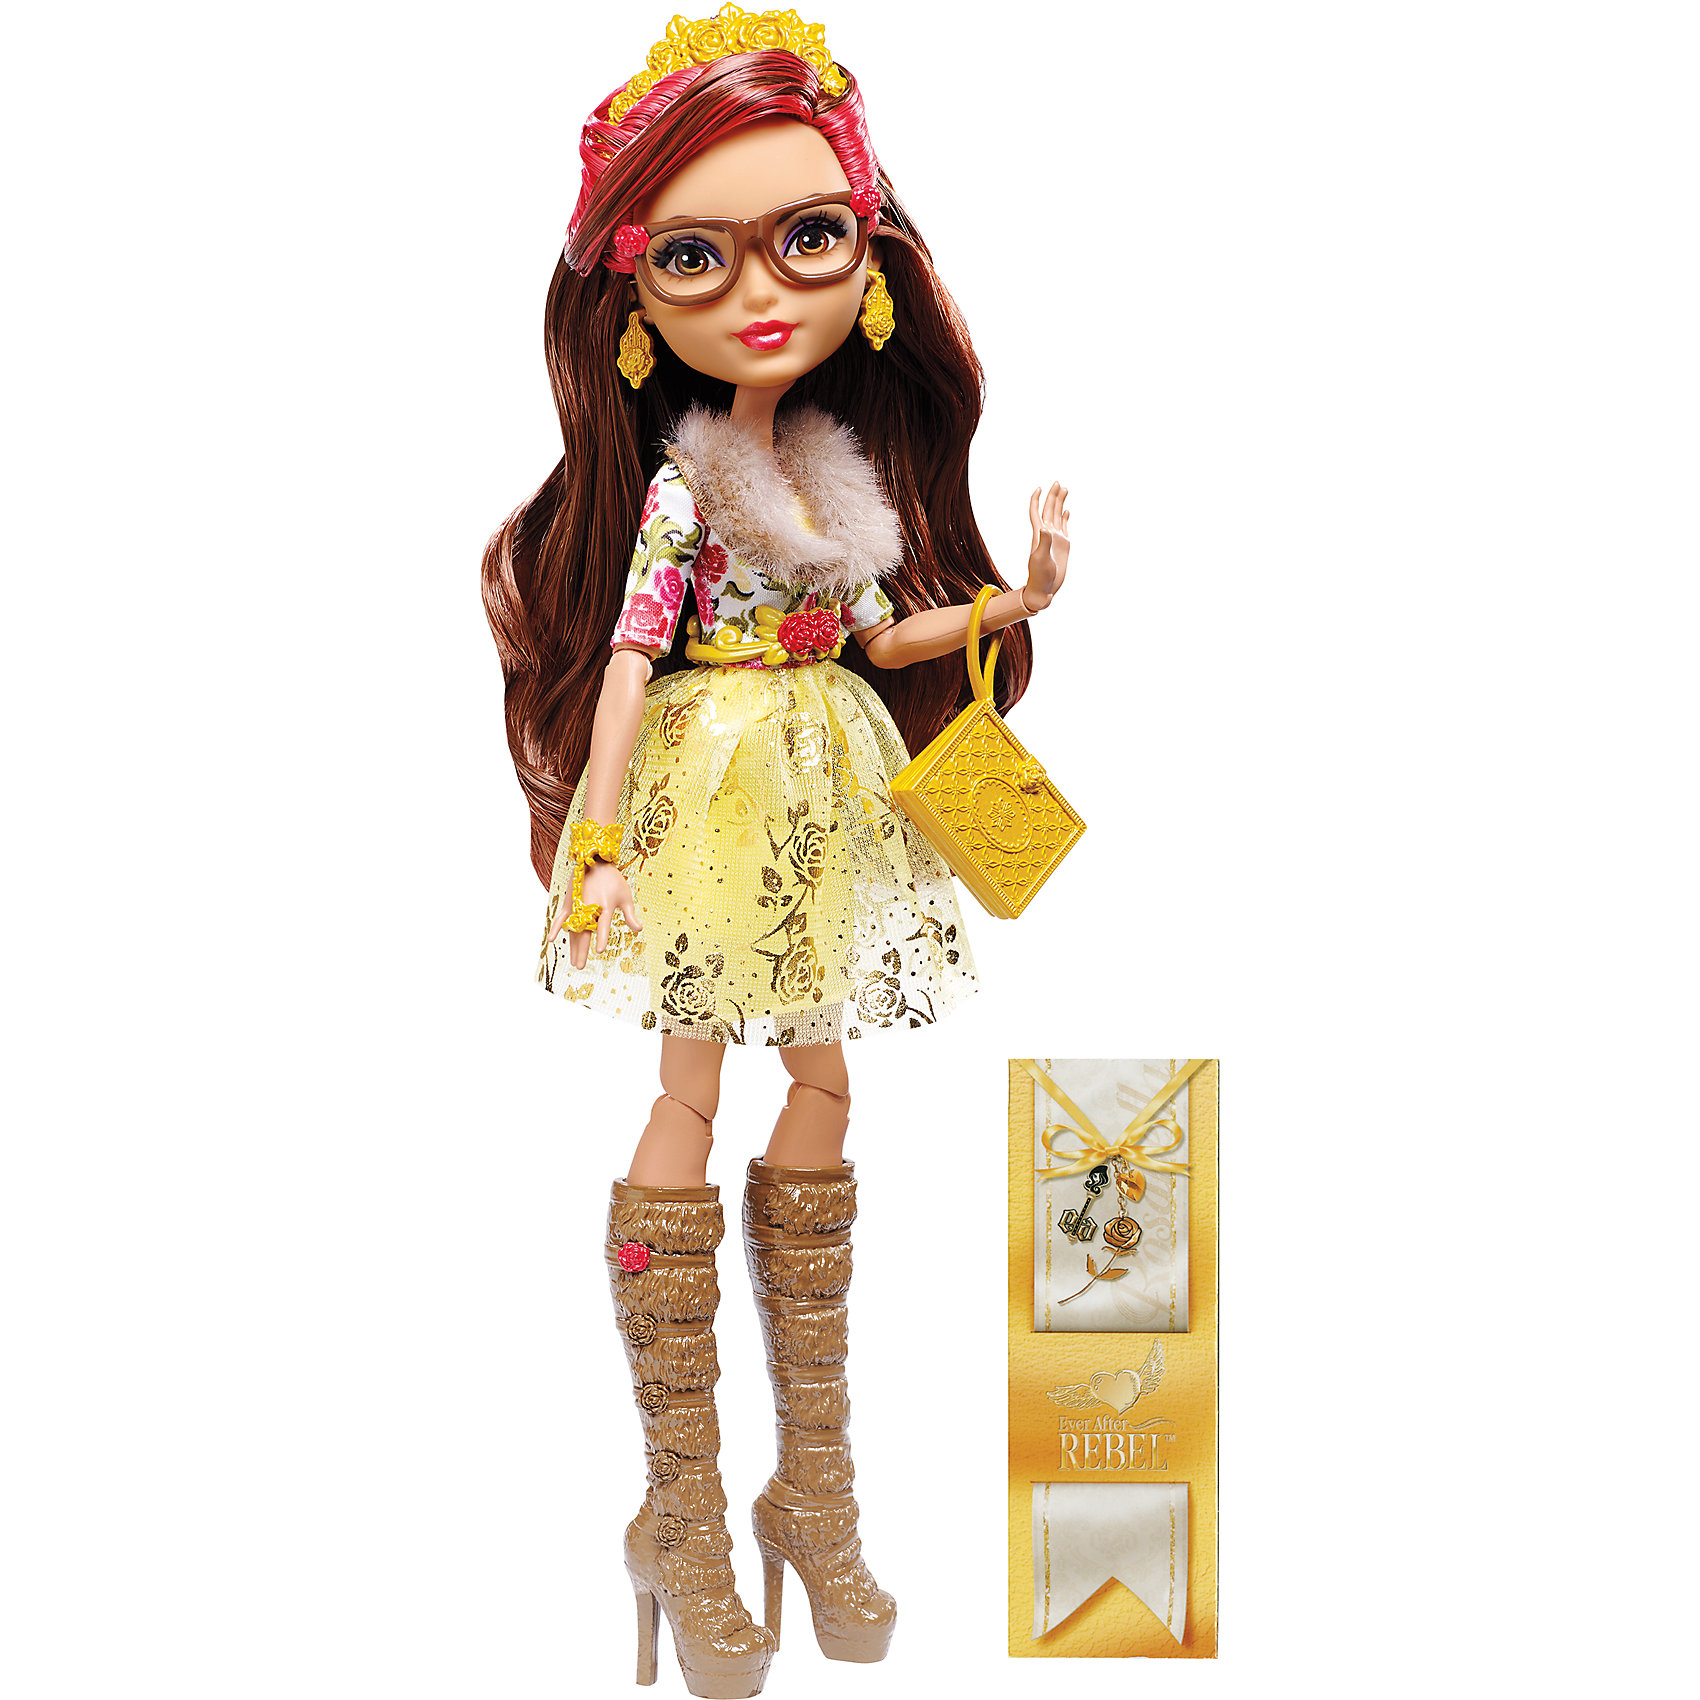 Mattel Кукла Розабелла Бьюти, Ever After High mattel ever after high dvh81 куклы лучницы банни бланк